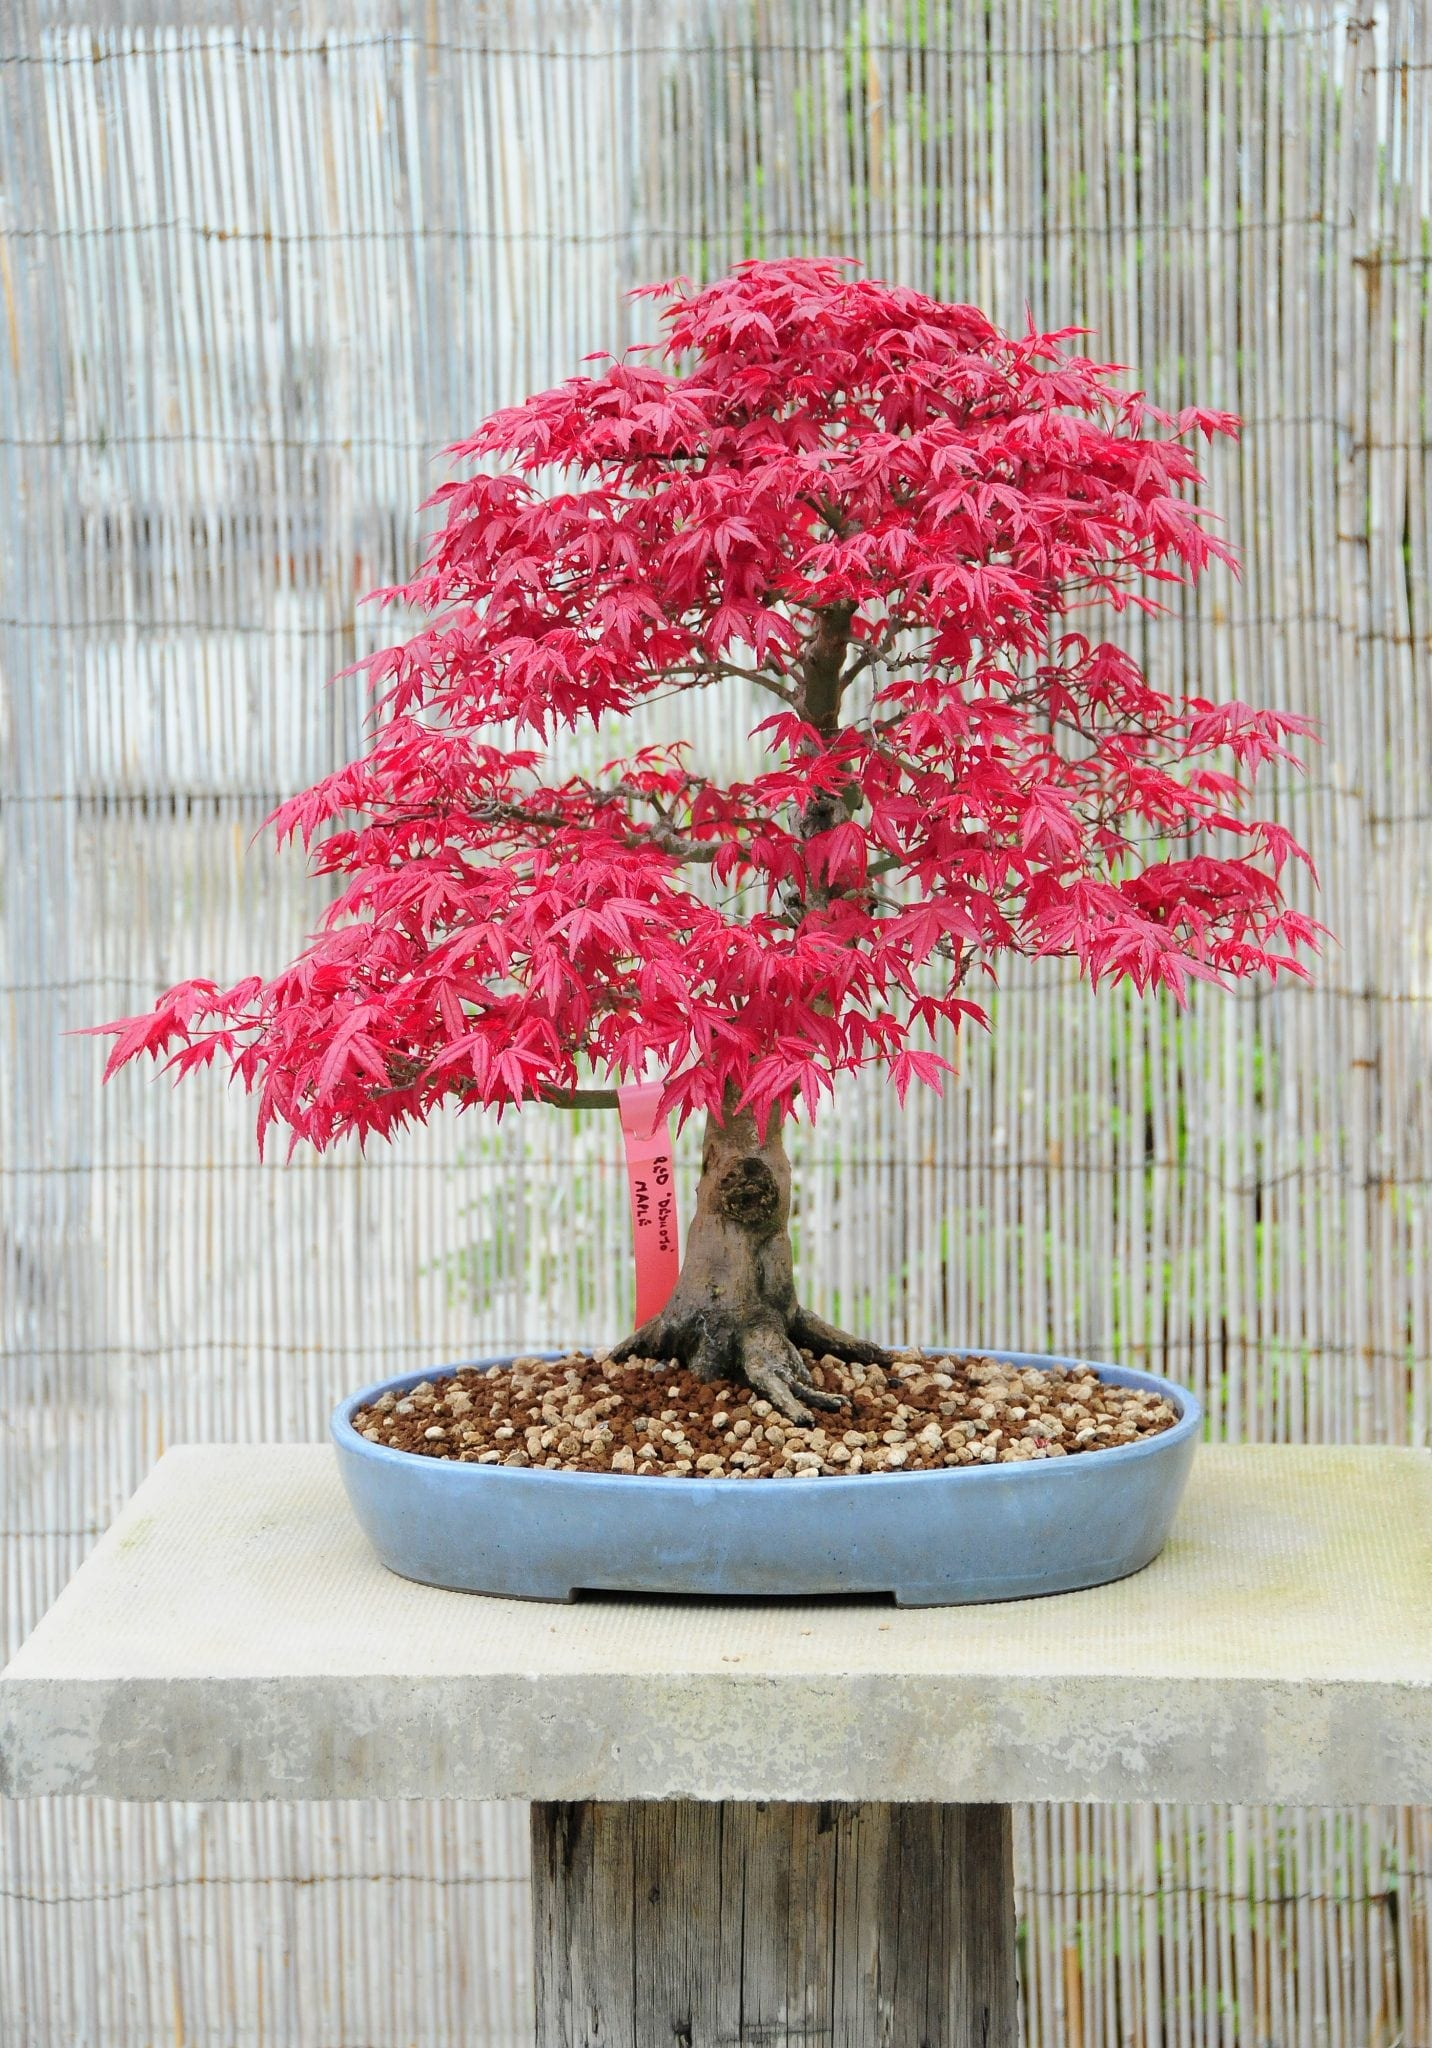 Japanese Maple Bonsai Tree Care Guide Acer Palmatum Bonsai Tree